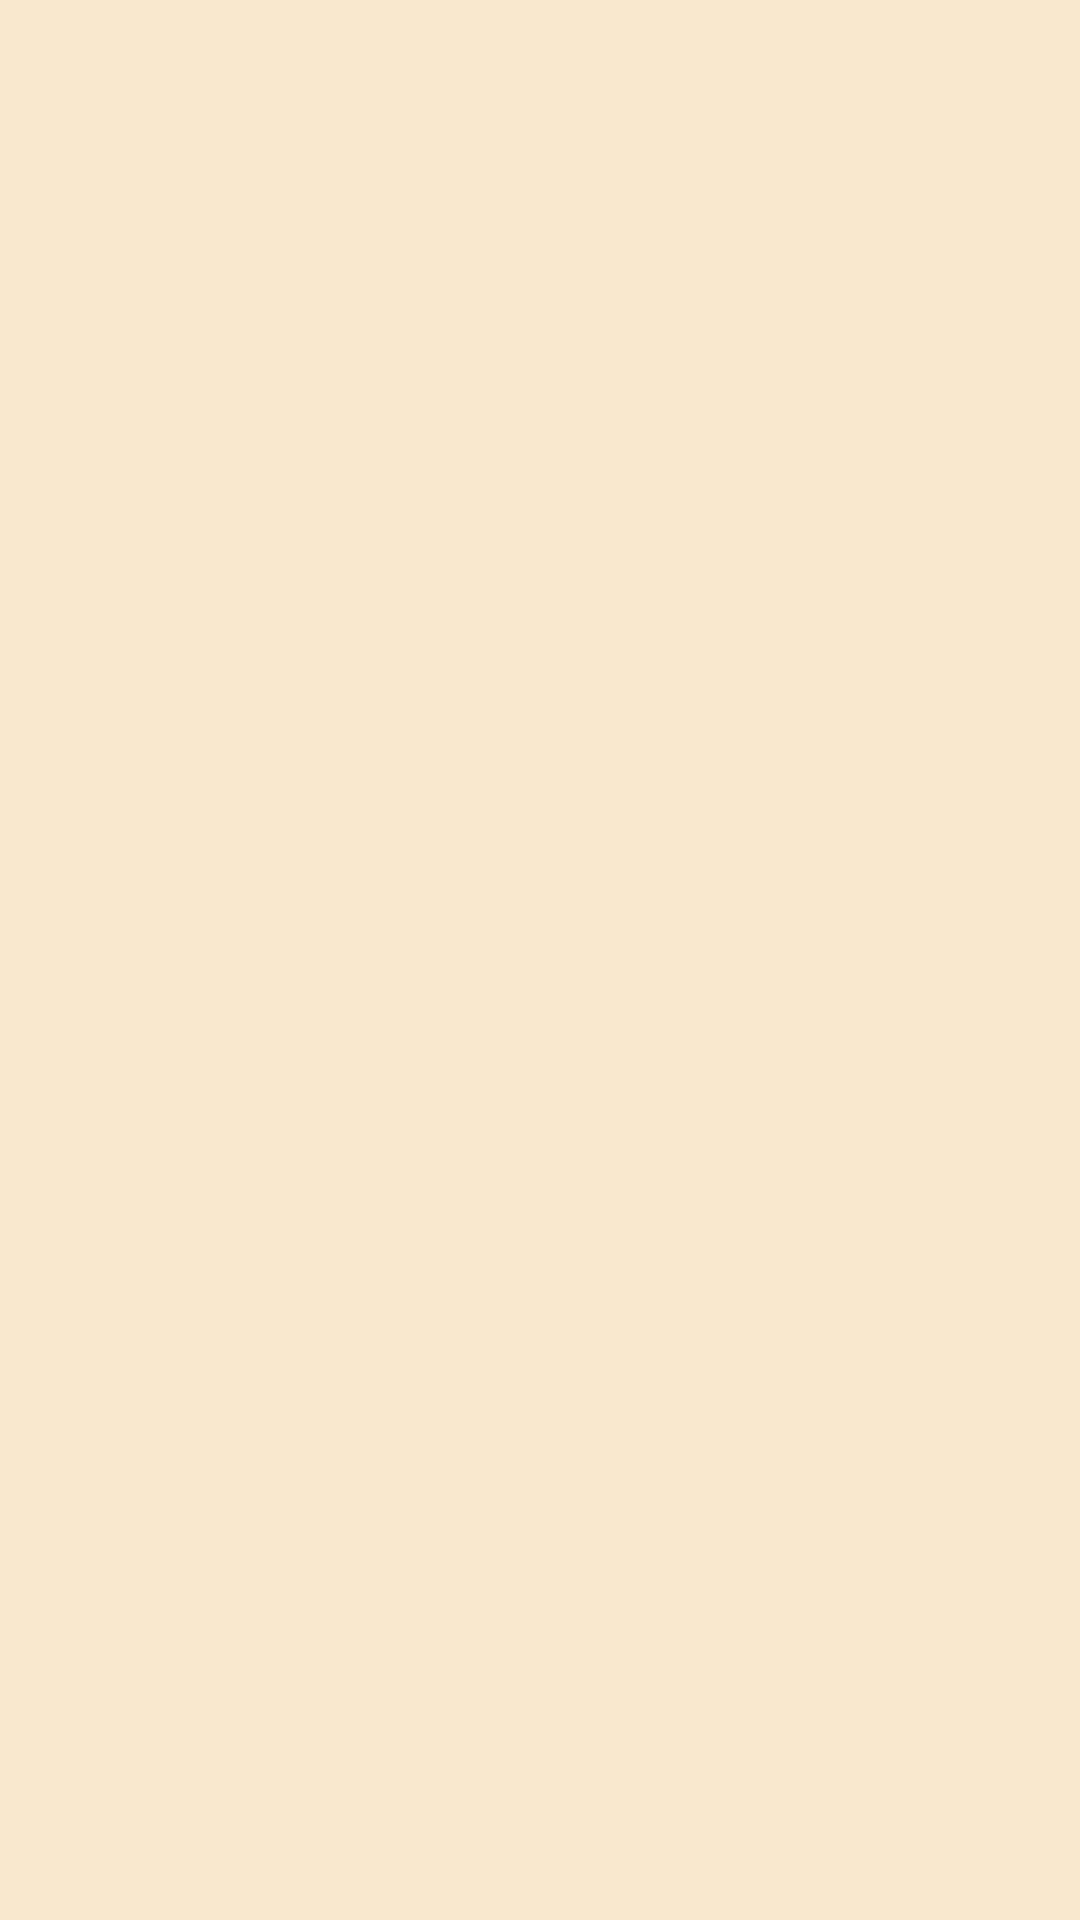 1080x1920 Champagne Solid Color Background